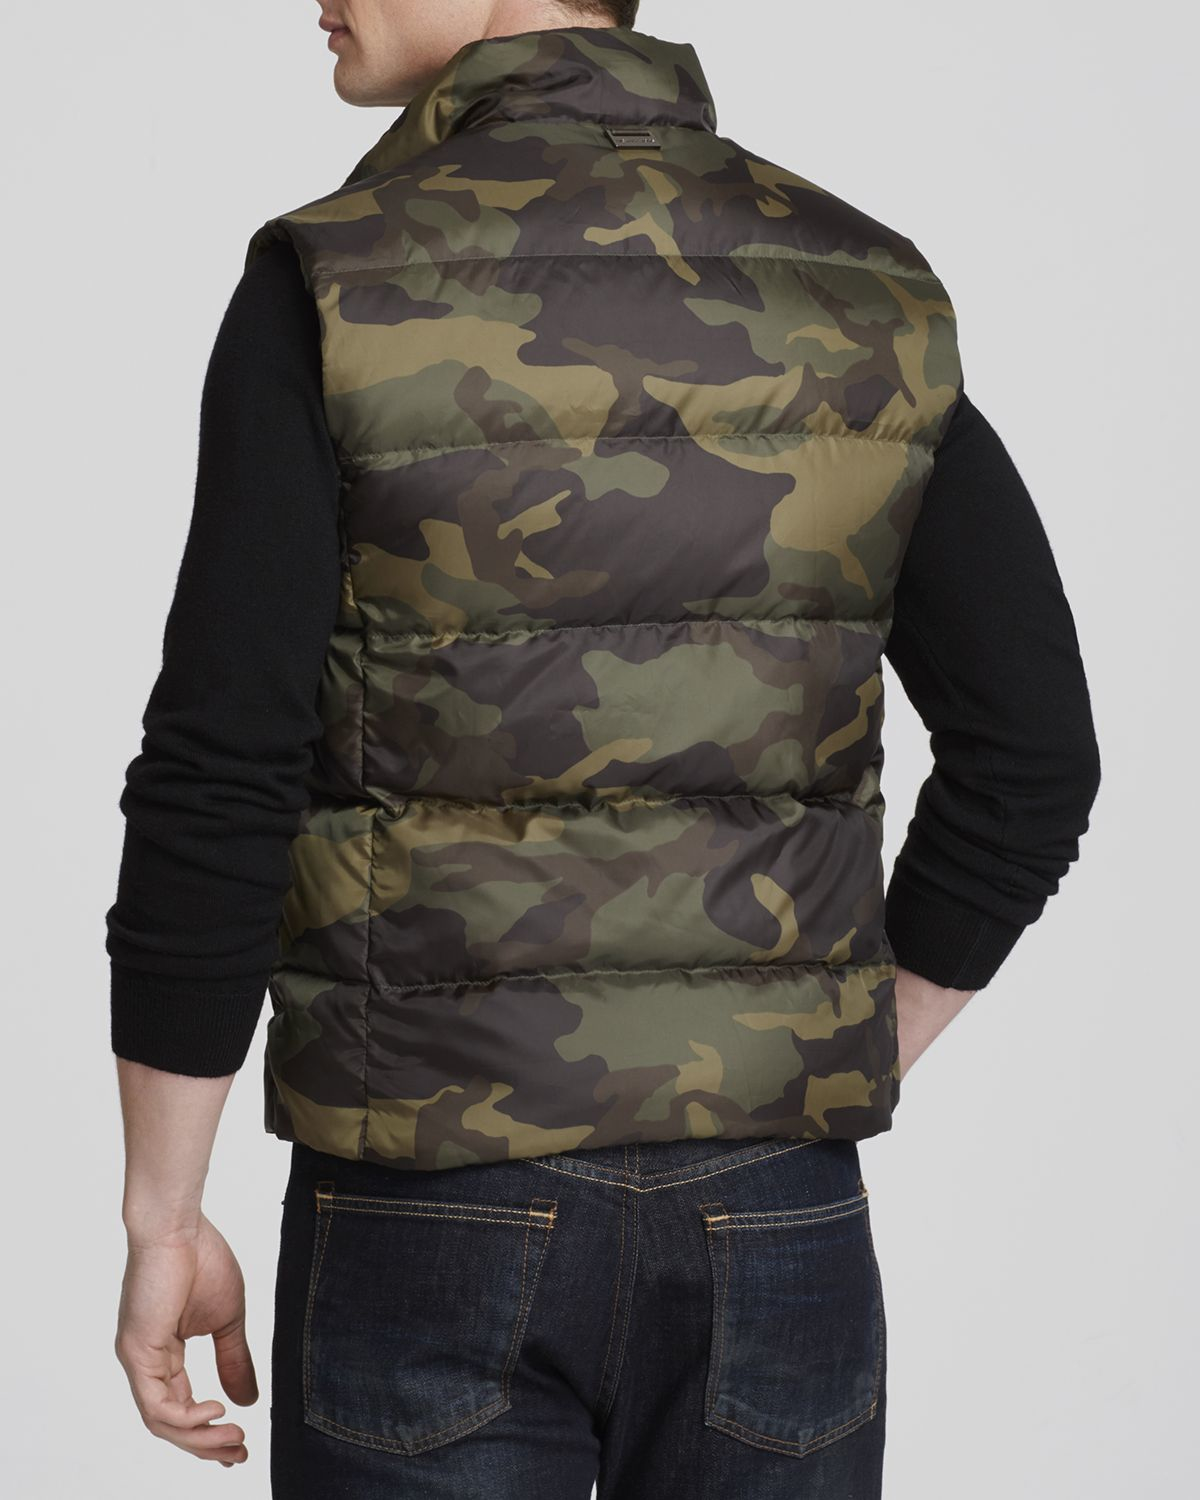 Lyst Michael Kors Camo Down Vest In Green For Men